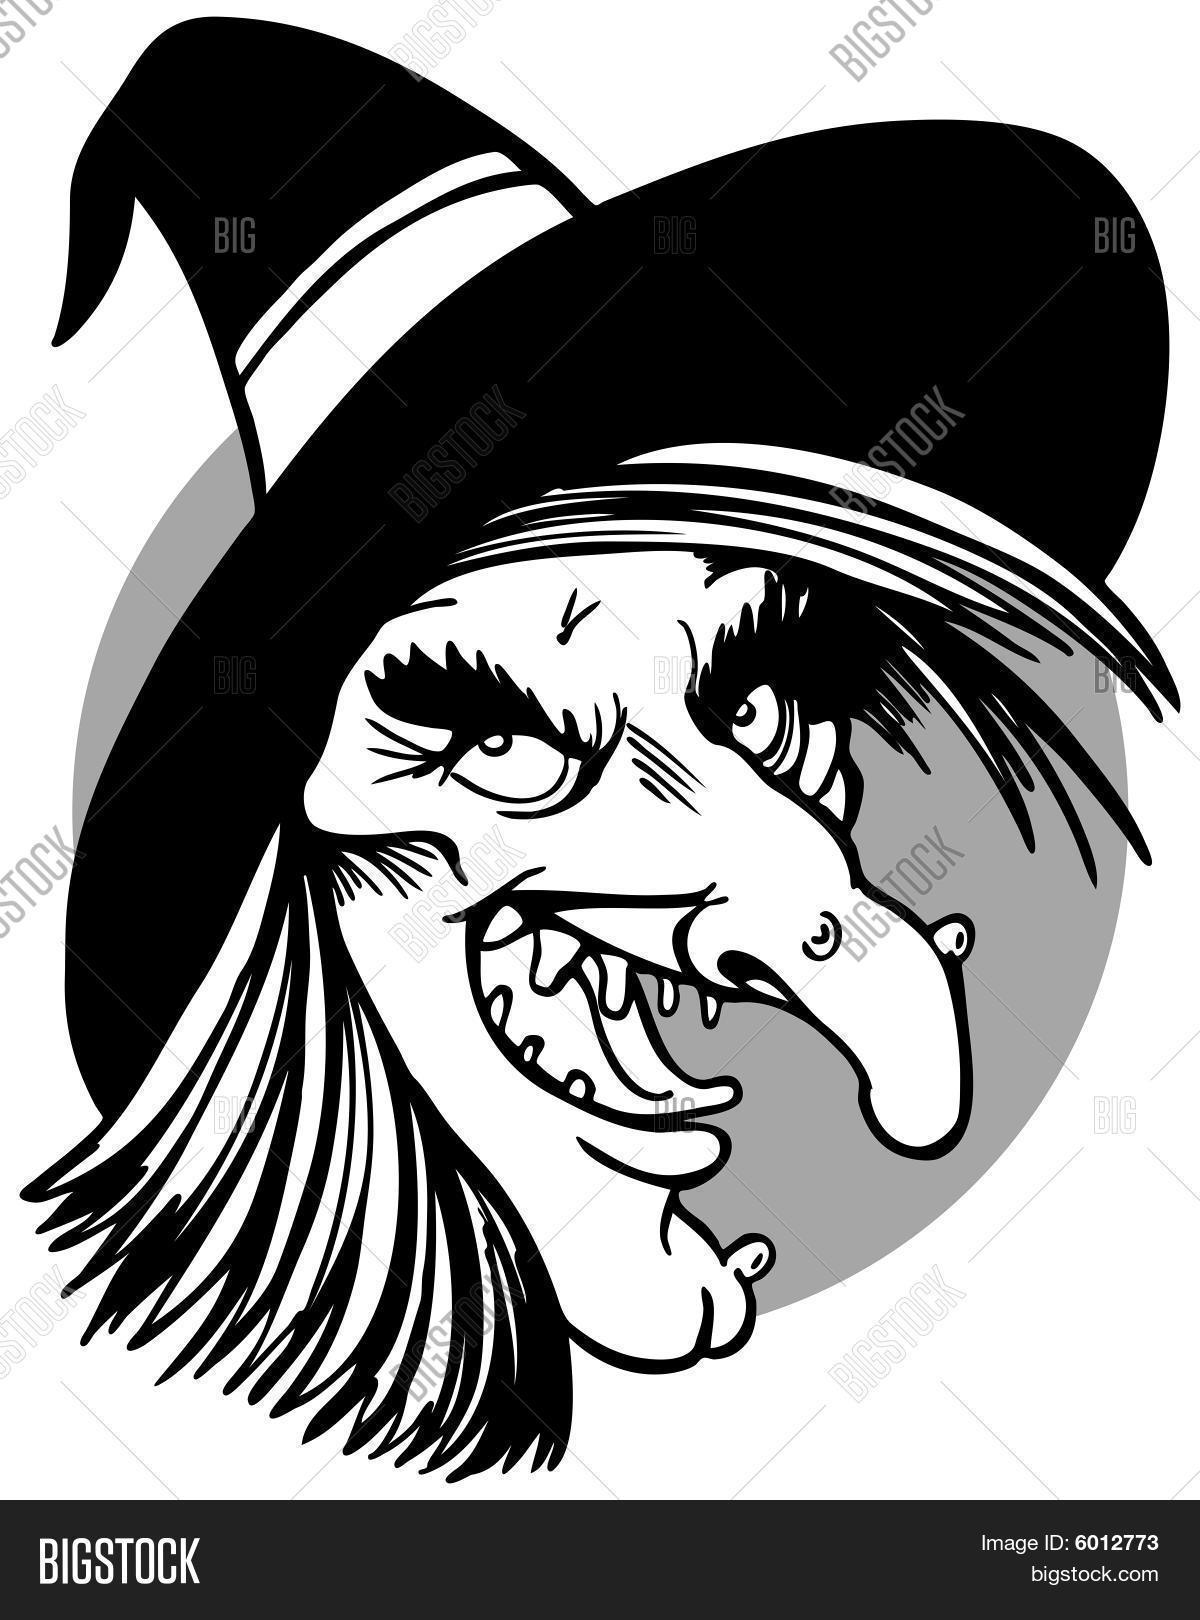 Line Drawing Of Witches Face : Witch face line art vector photo bigstock